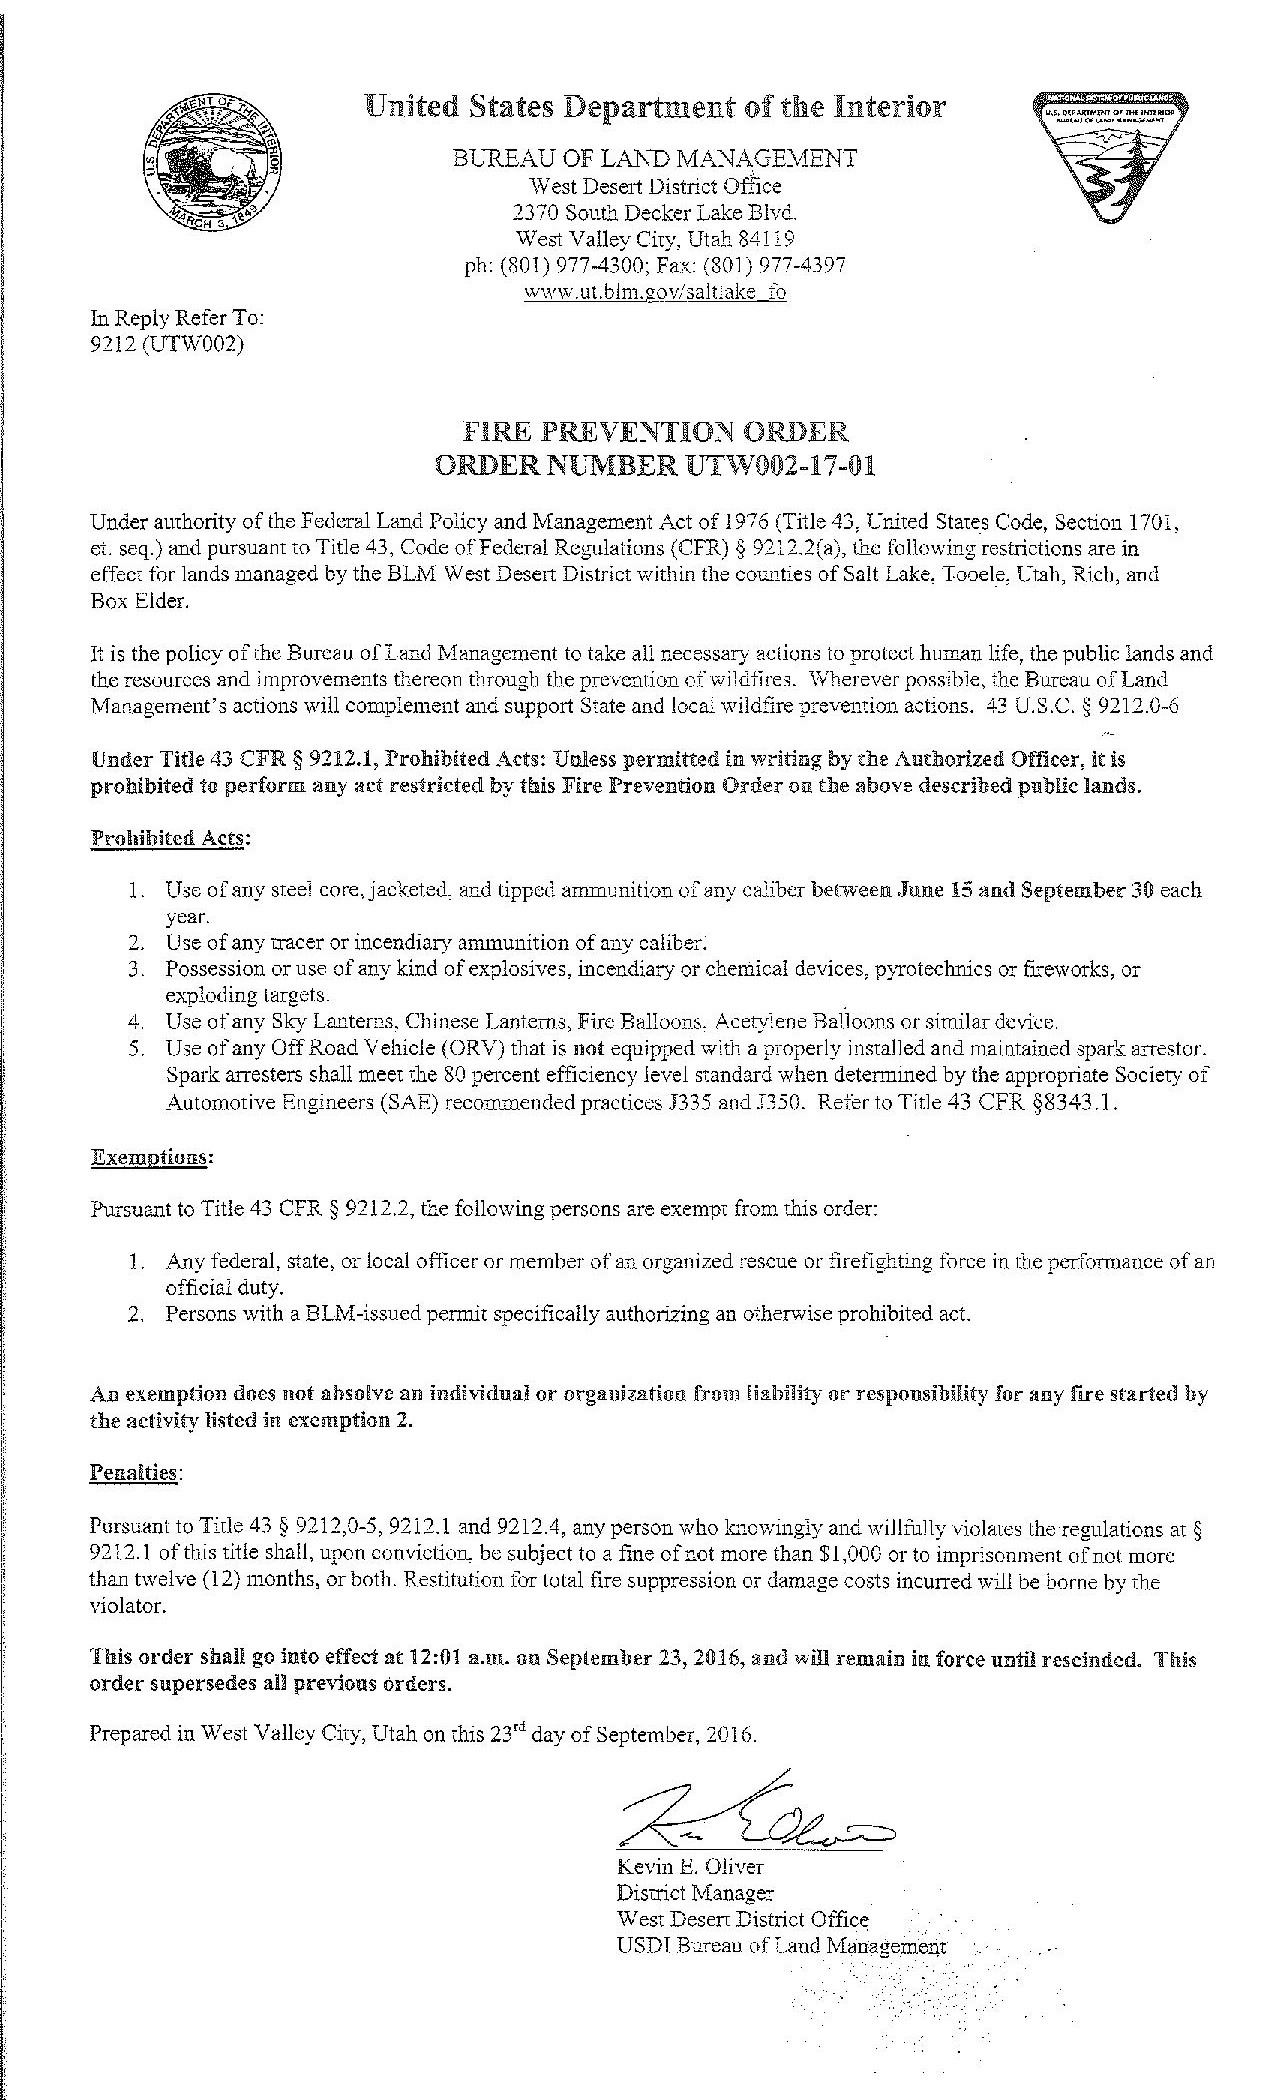 wdd_fire_prev_orderutw002-17-01signed-page-001